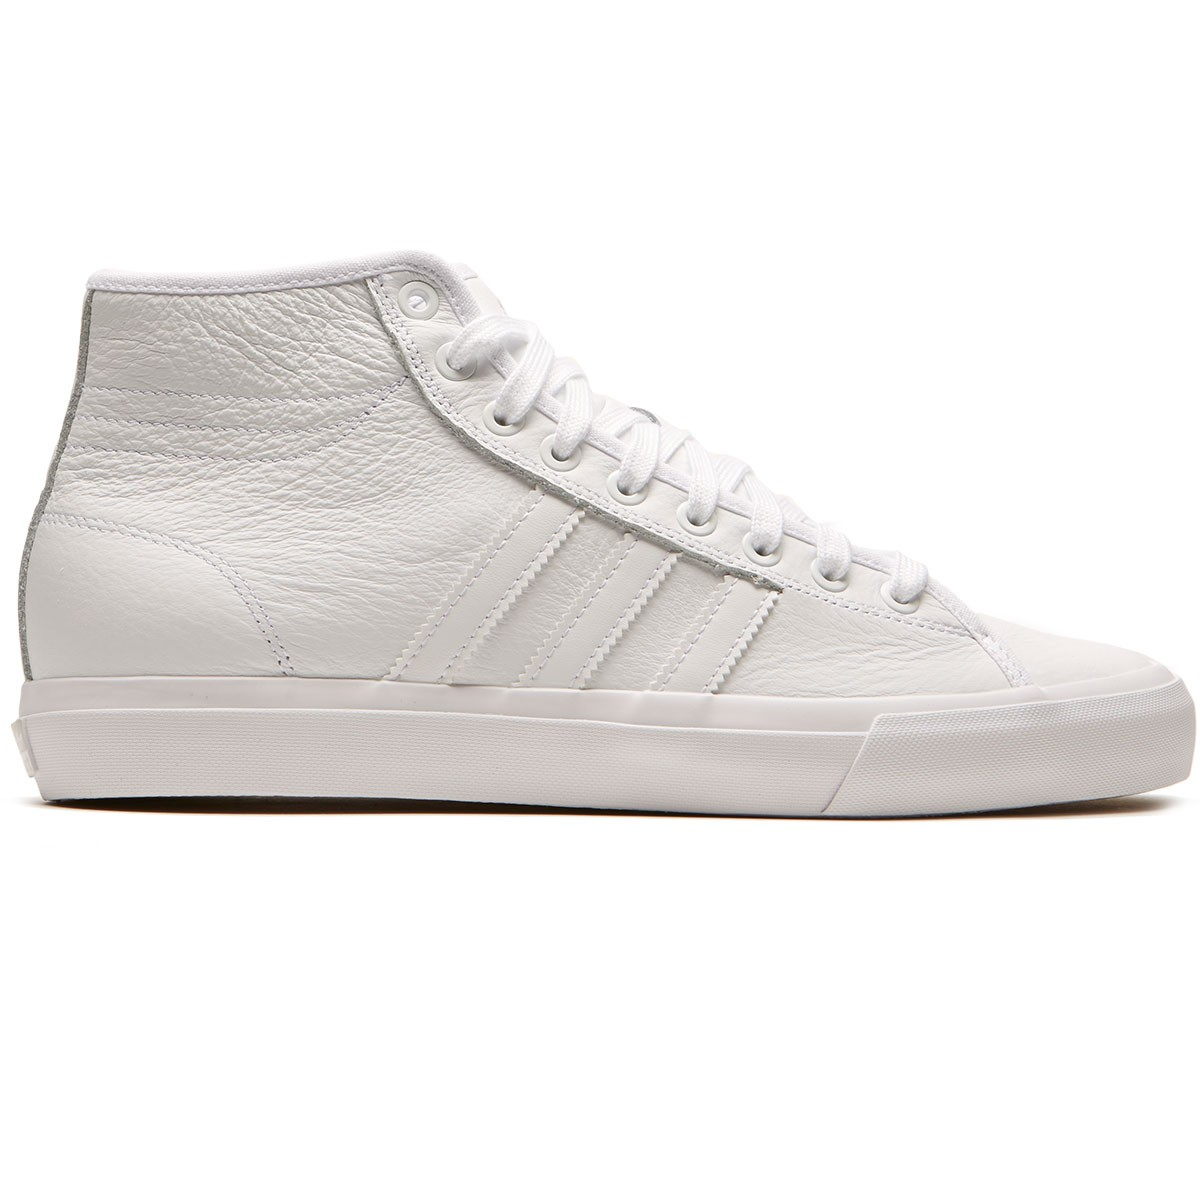 Adidas Matchcourt High RX Leather Shoes